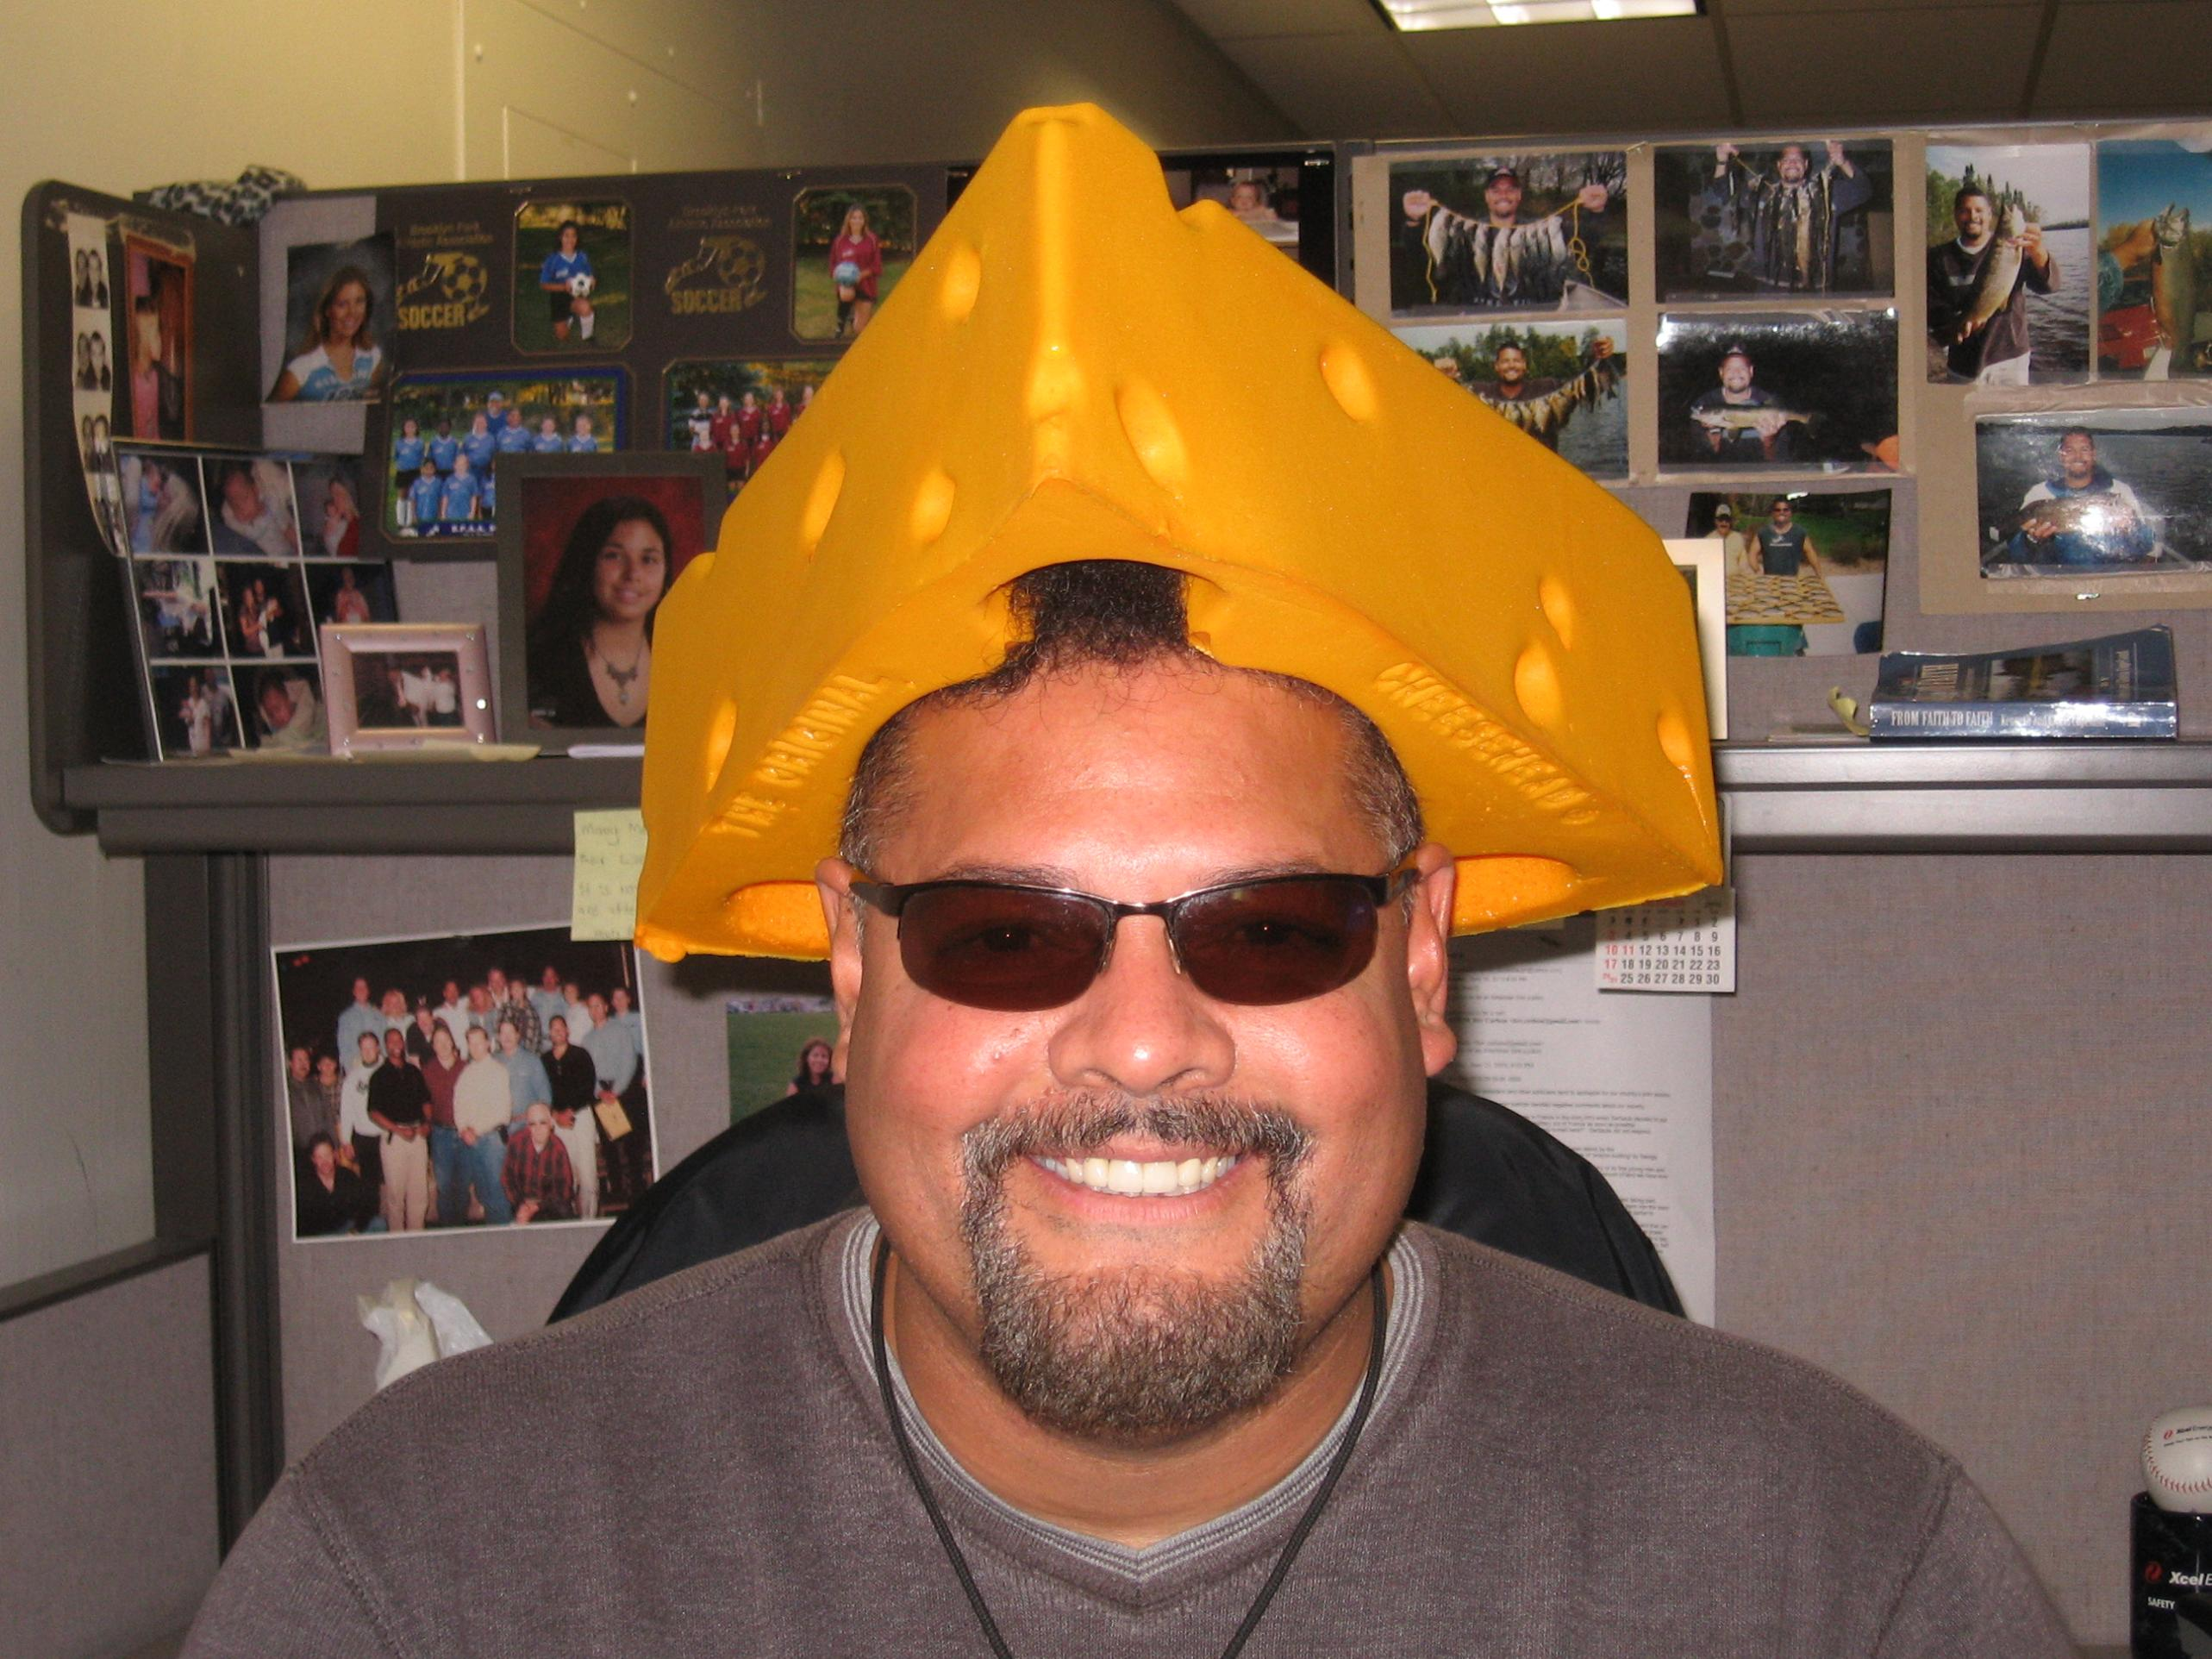 cheesehead dating Me, wearing a cheesehead while eating cheese eloise kirn i recently engaged in a little tinder experiment: i wore a cheesehead in all of the pictures i uploaded to the dating app.